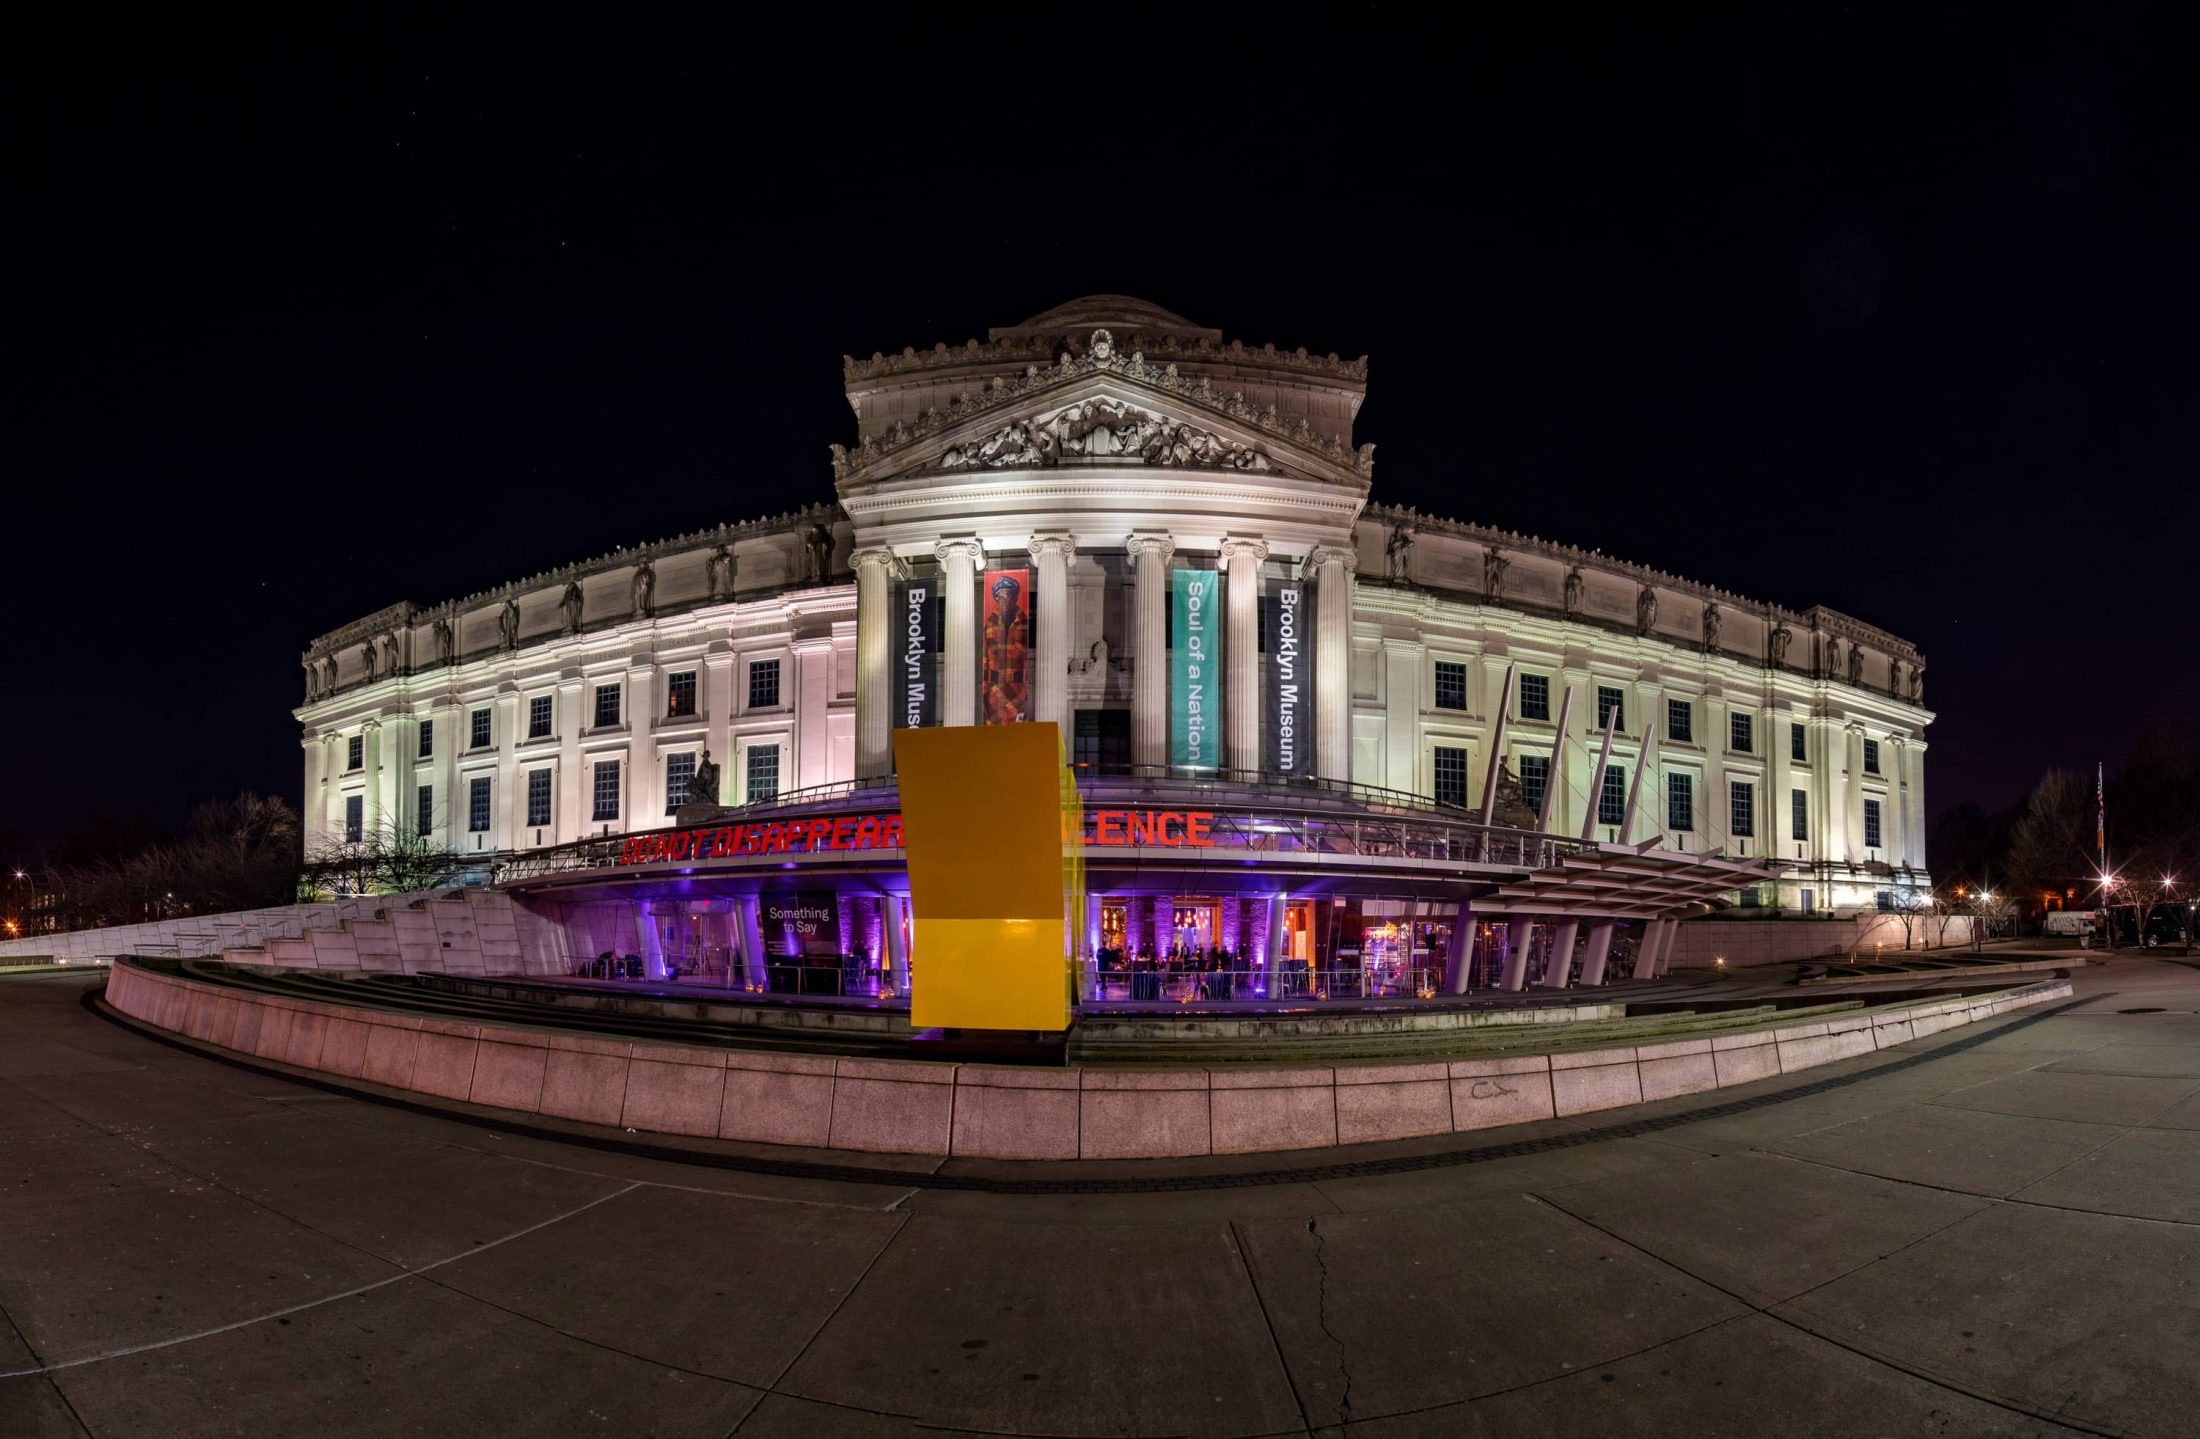 Brooklyn Museum at night in NYC | Photo by Gruber Photo